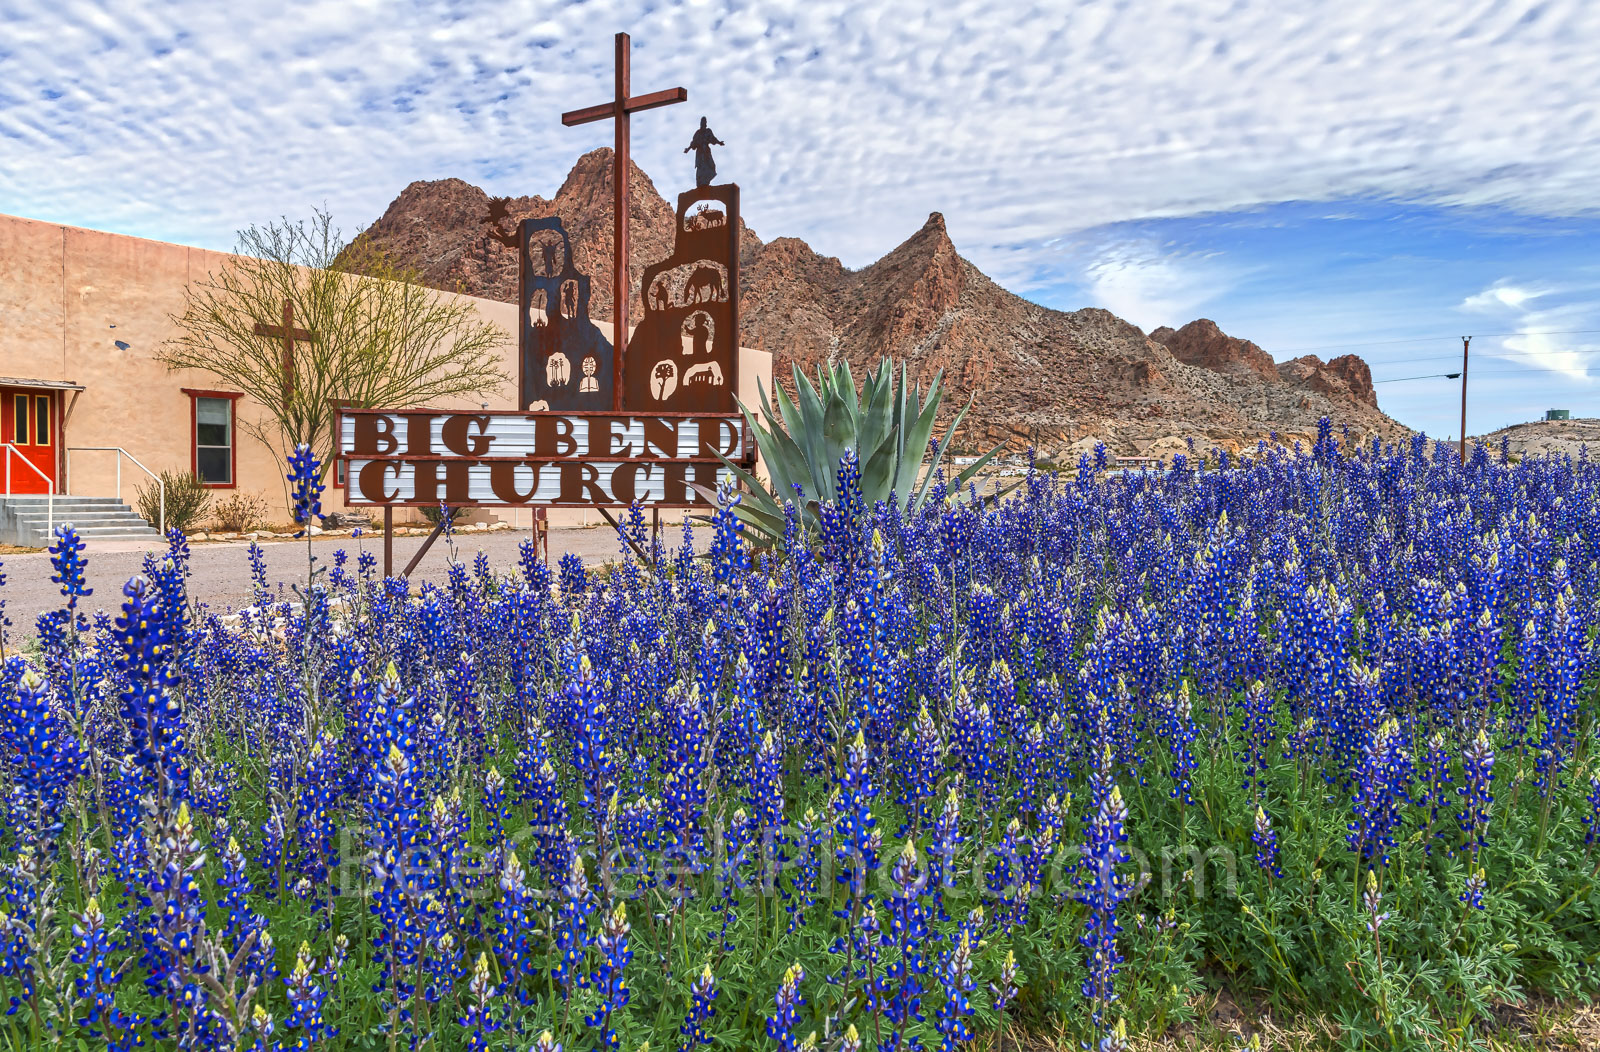 bluebonnets, big bend church, texas wildflowers, images of bluebonnets, texas bluebonnets, Big bend bluebonnets, Terlingua, Study Butte - Terlingua, west texas, usa,, photo